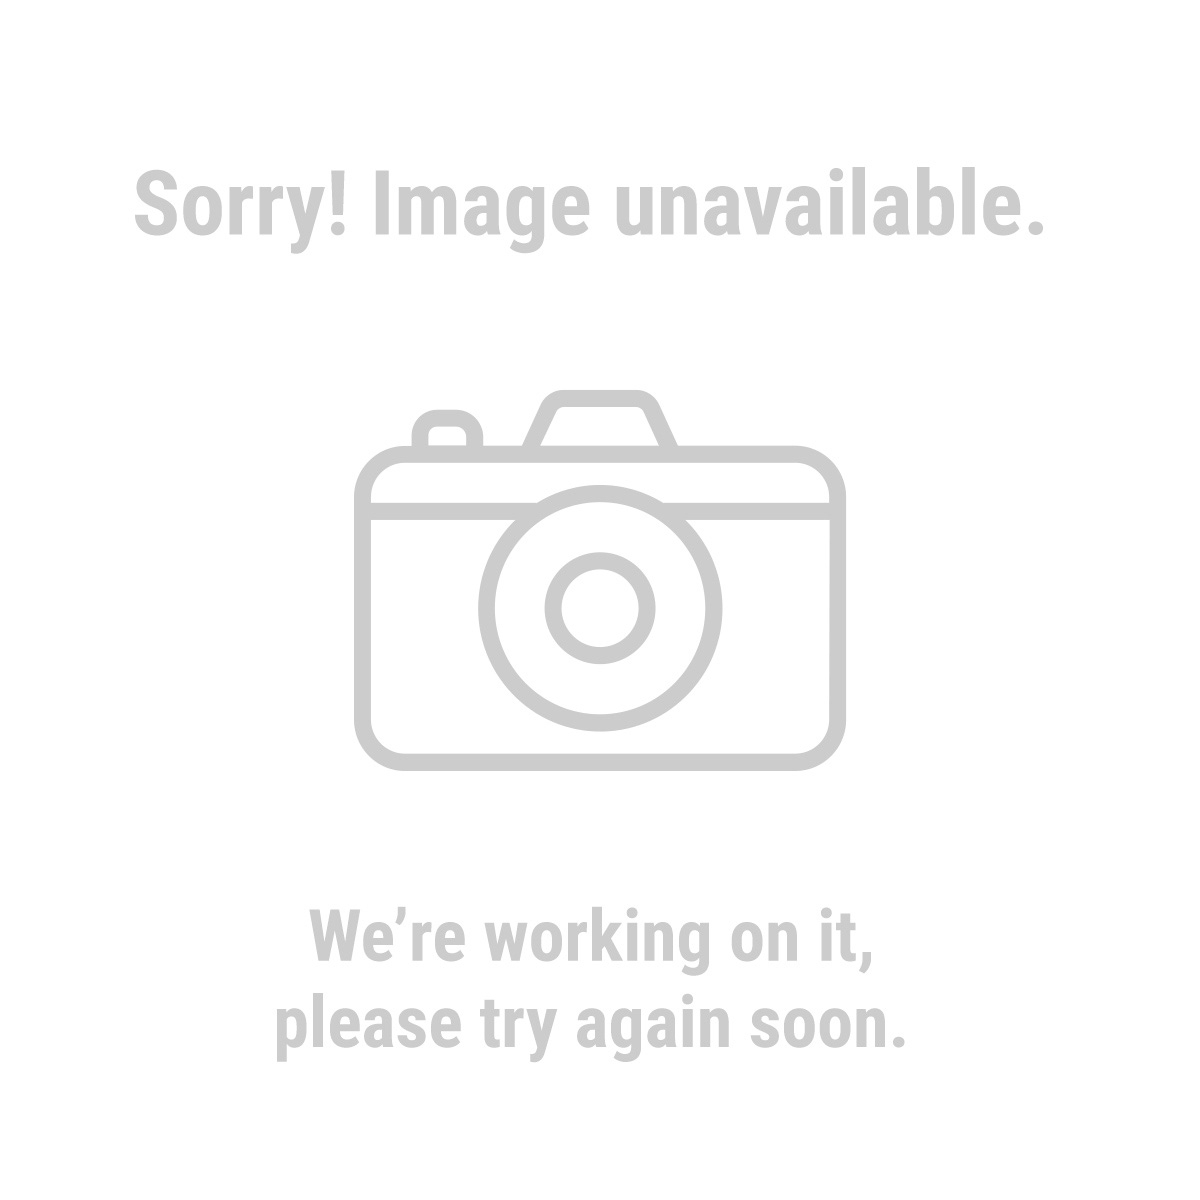 HFT 69034 10 ft. x 20 ft. Portable Car Canopy